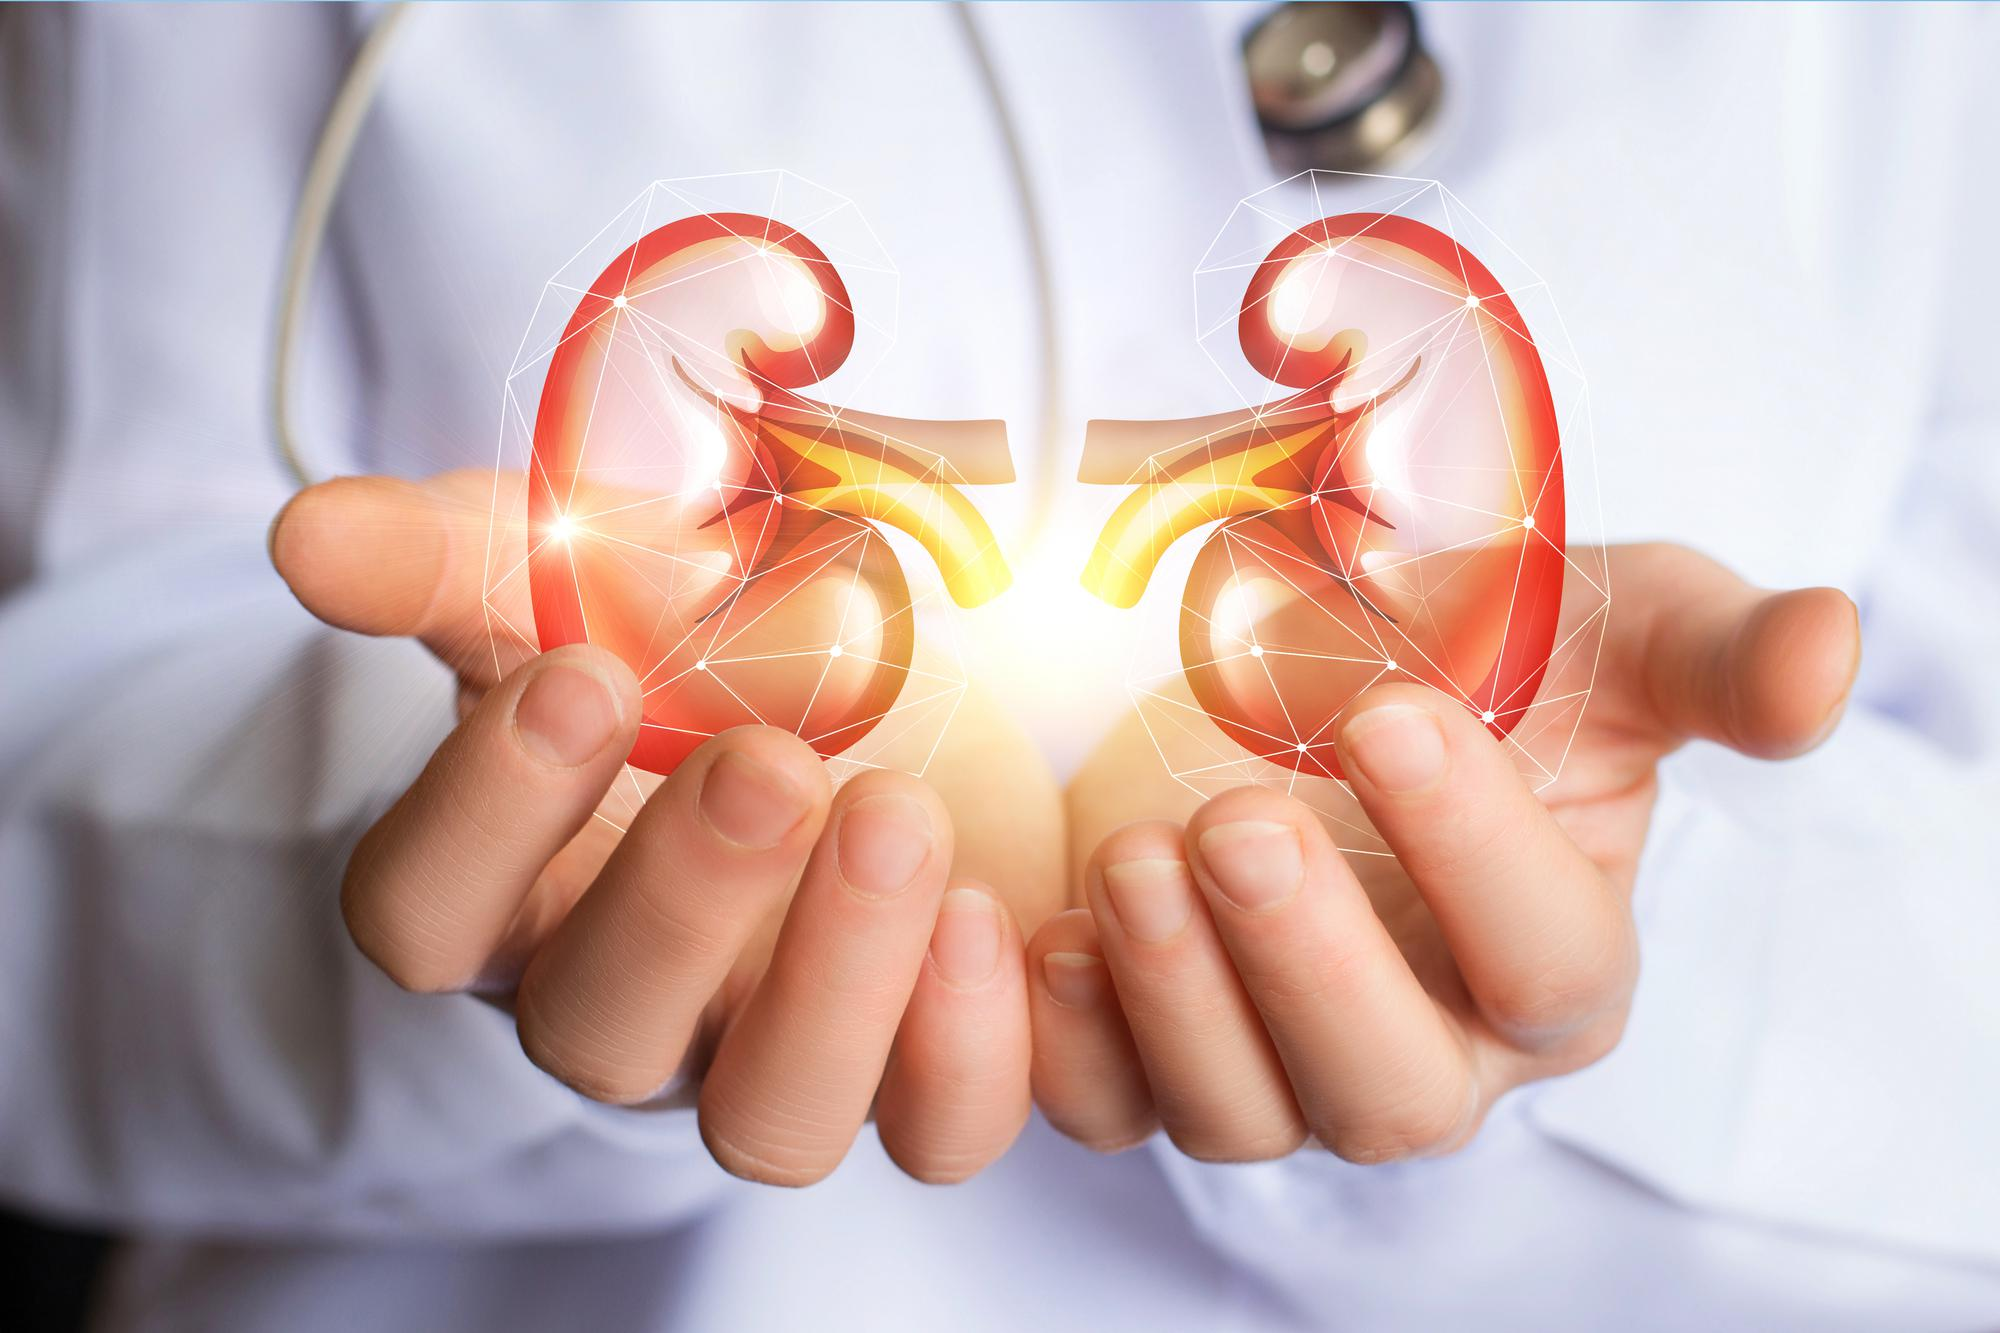 What are the methods for Measuring Renal Function?